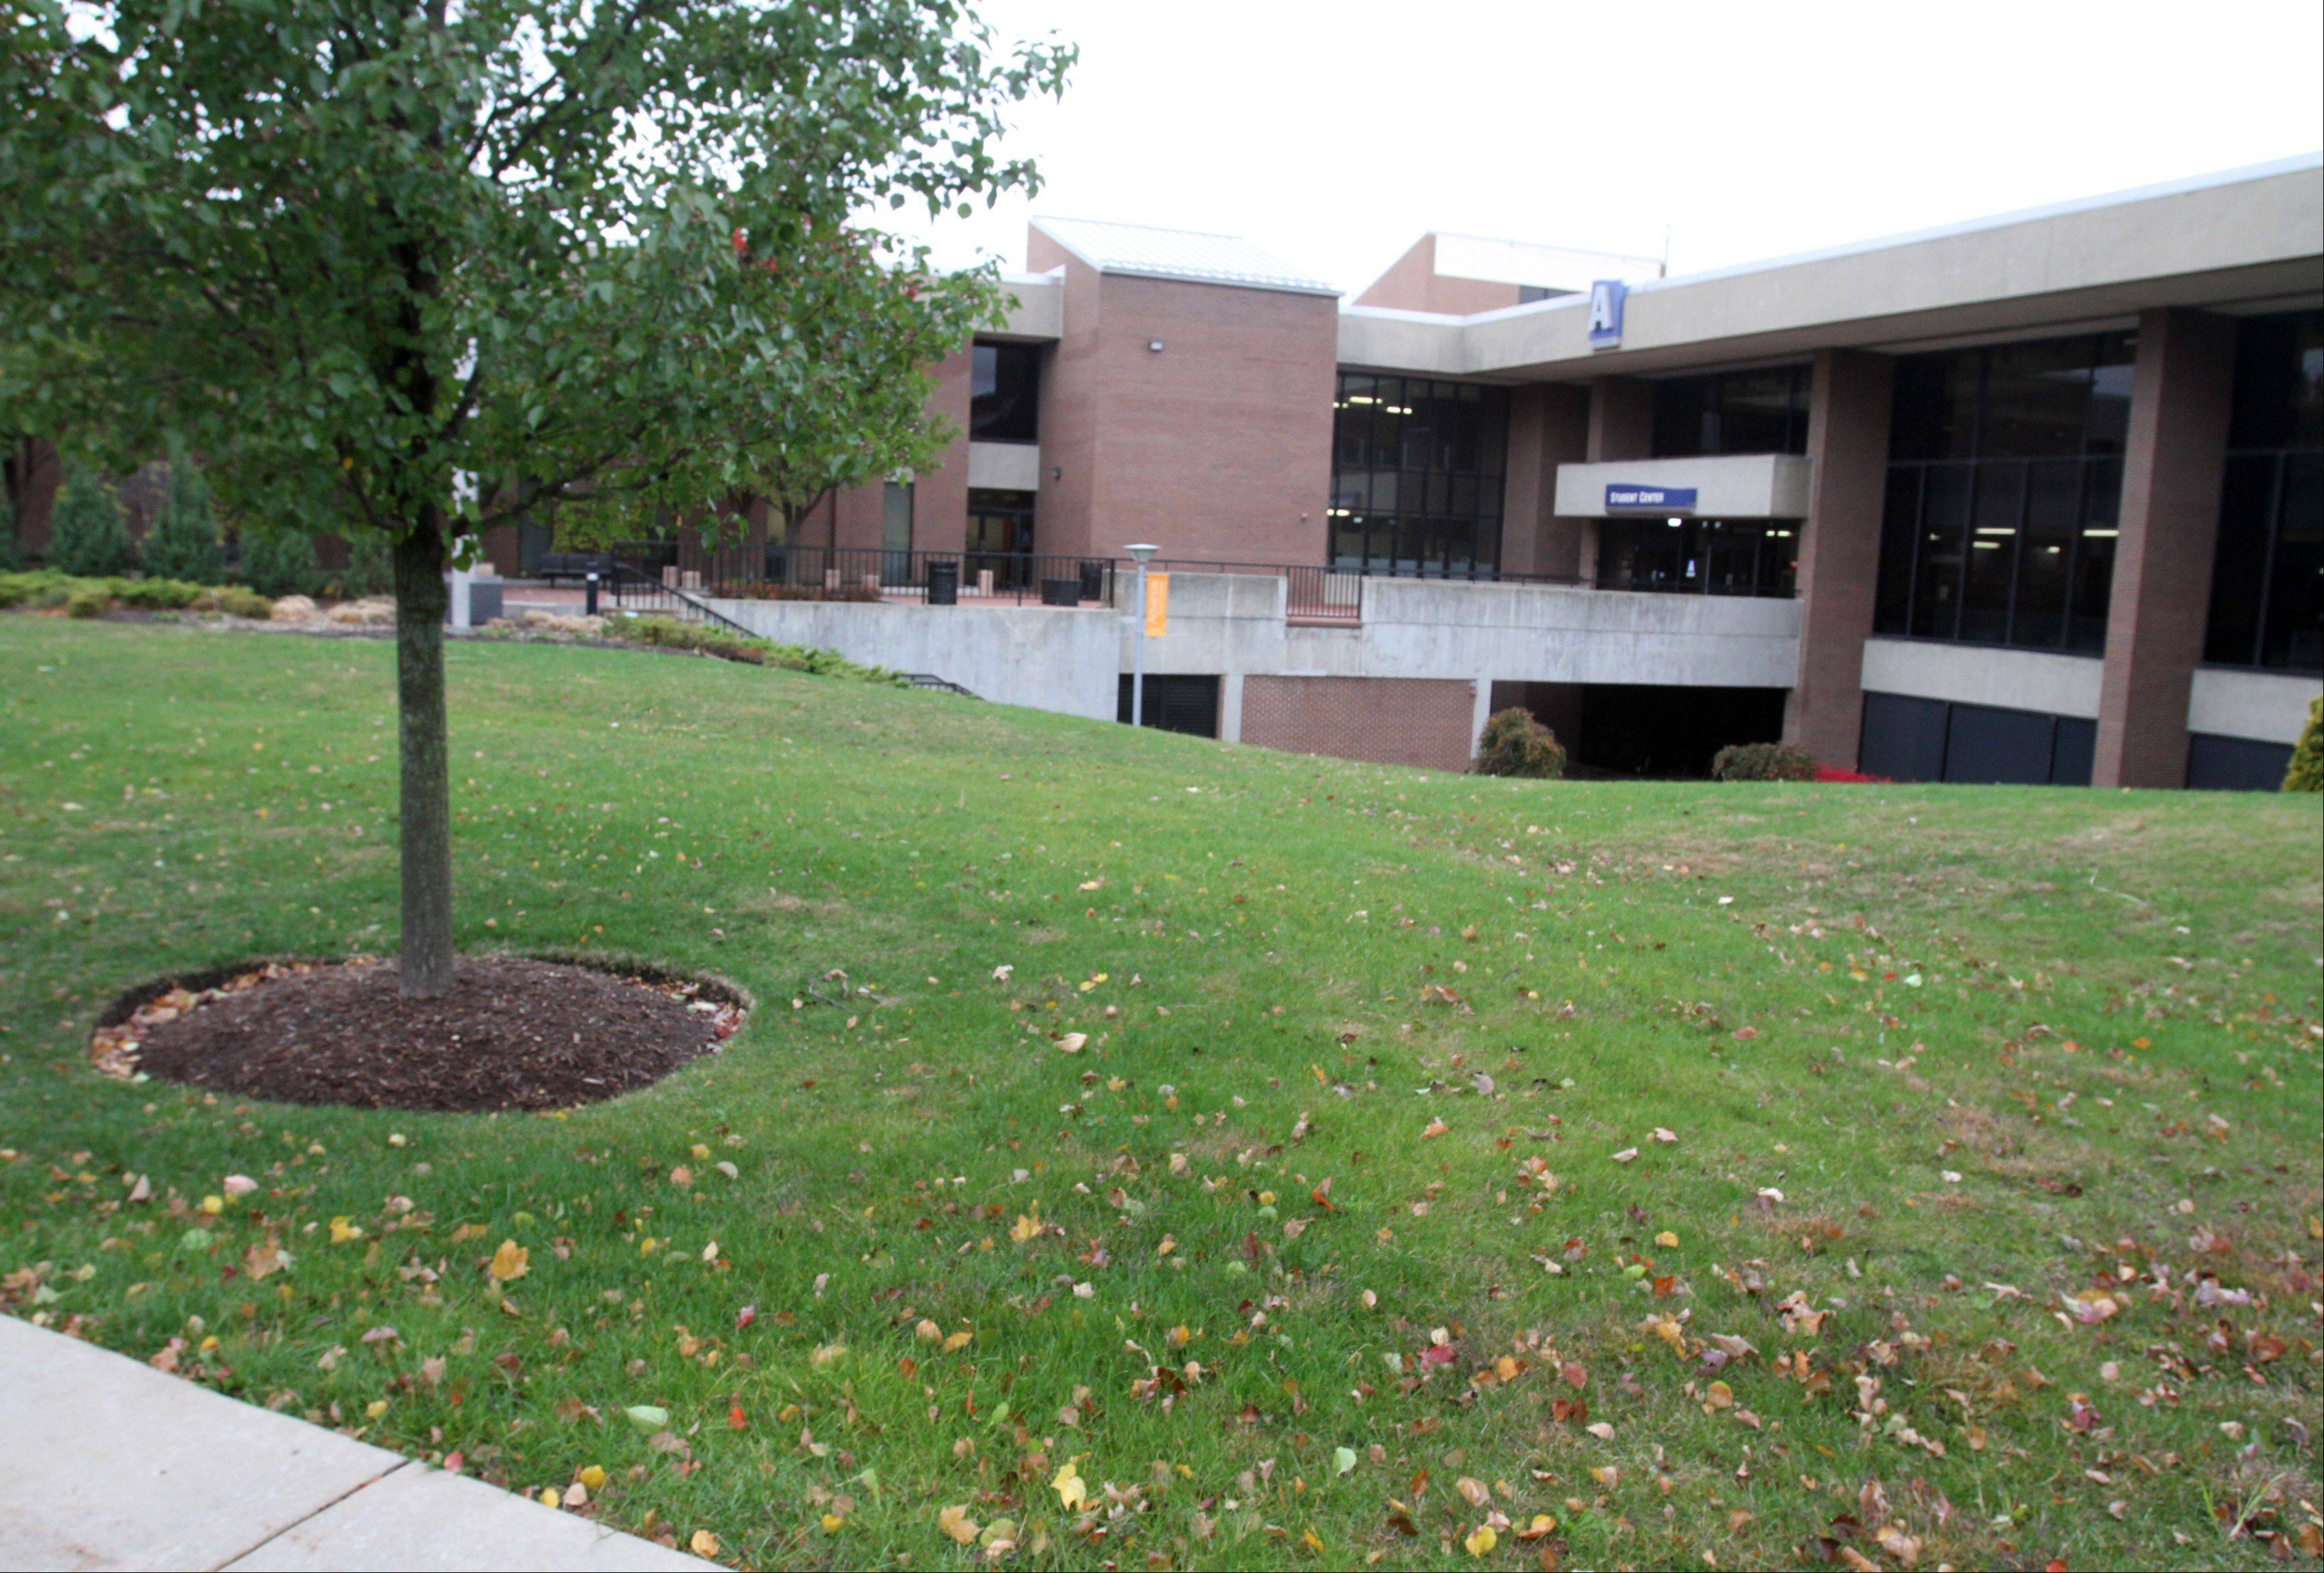 A Campus Life Building is planned for this vacant spot on Harper College's campus near Buildings A and K. The facility would combine admissions, financial aid, tutoring and other student services.